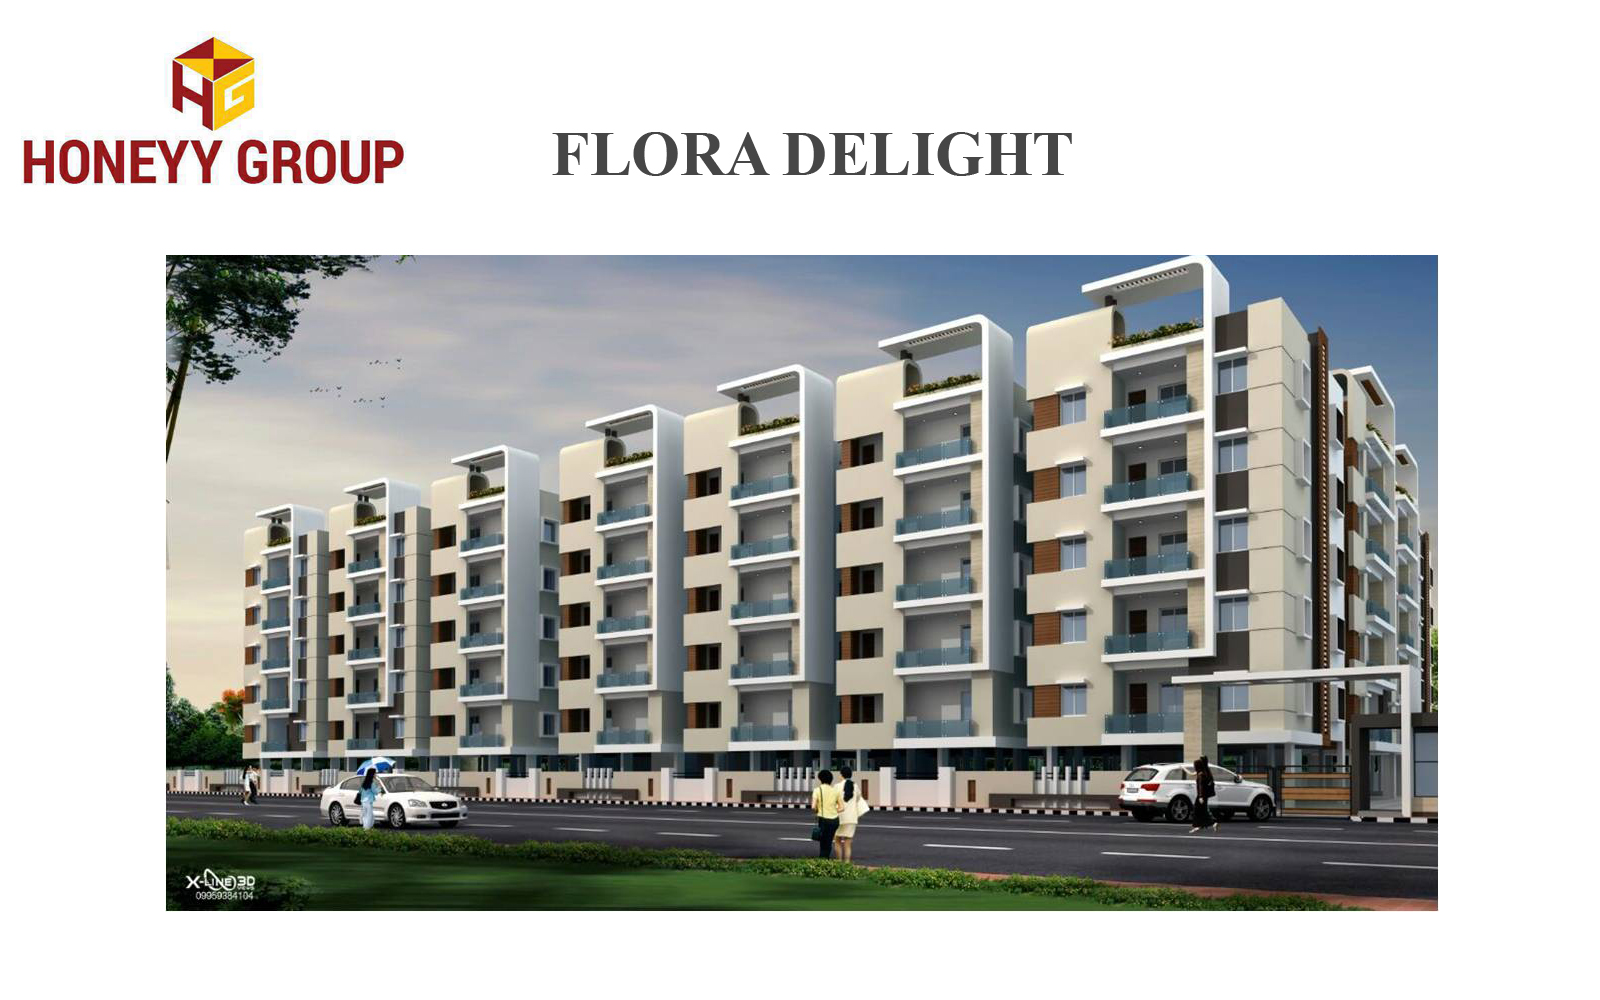 FLORA DELIGHT project details - Madhurawada